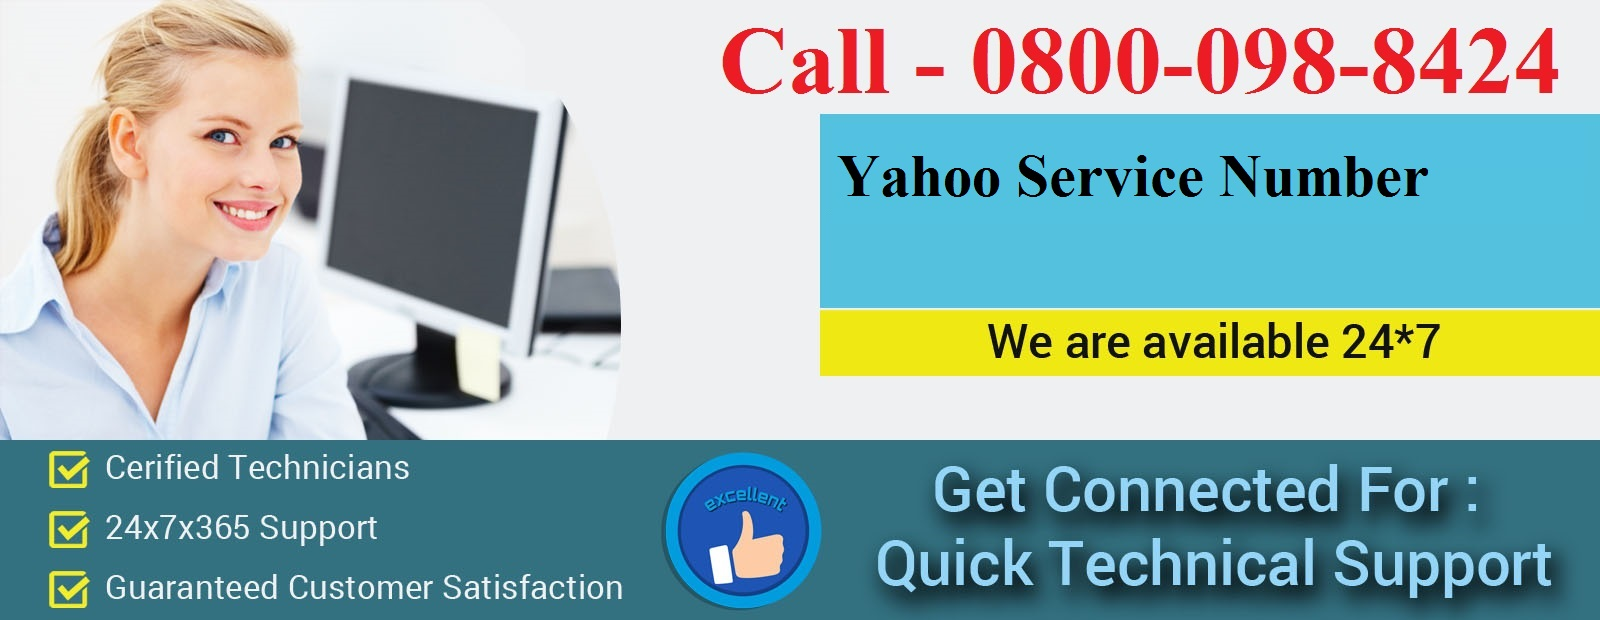 yahoo contact number - Magazine cover